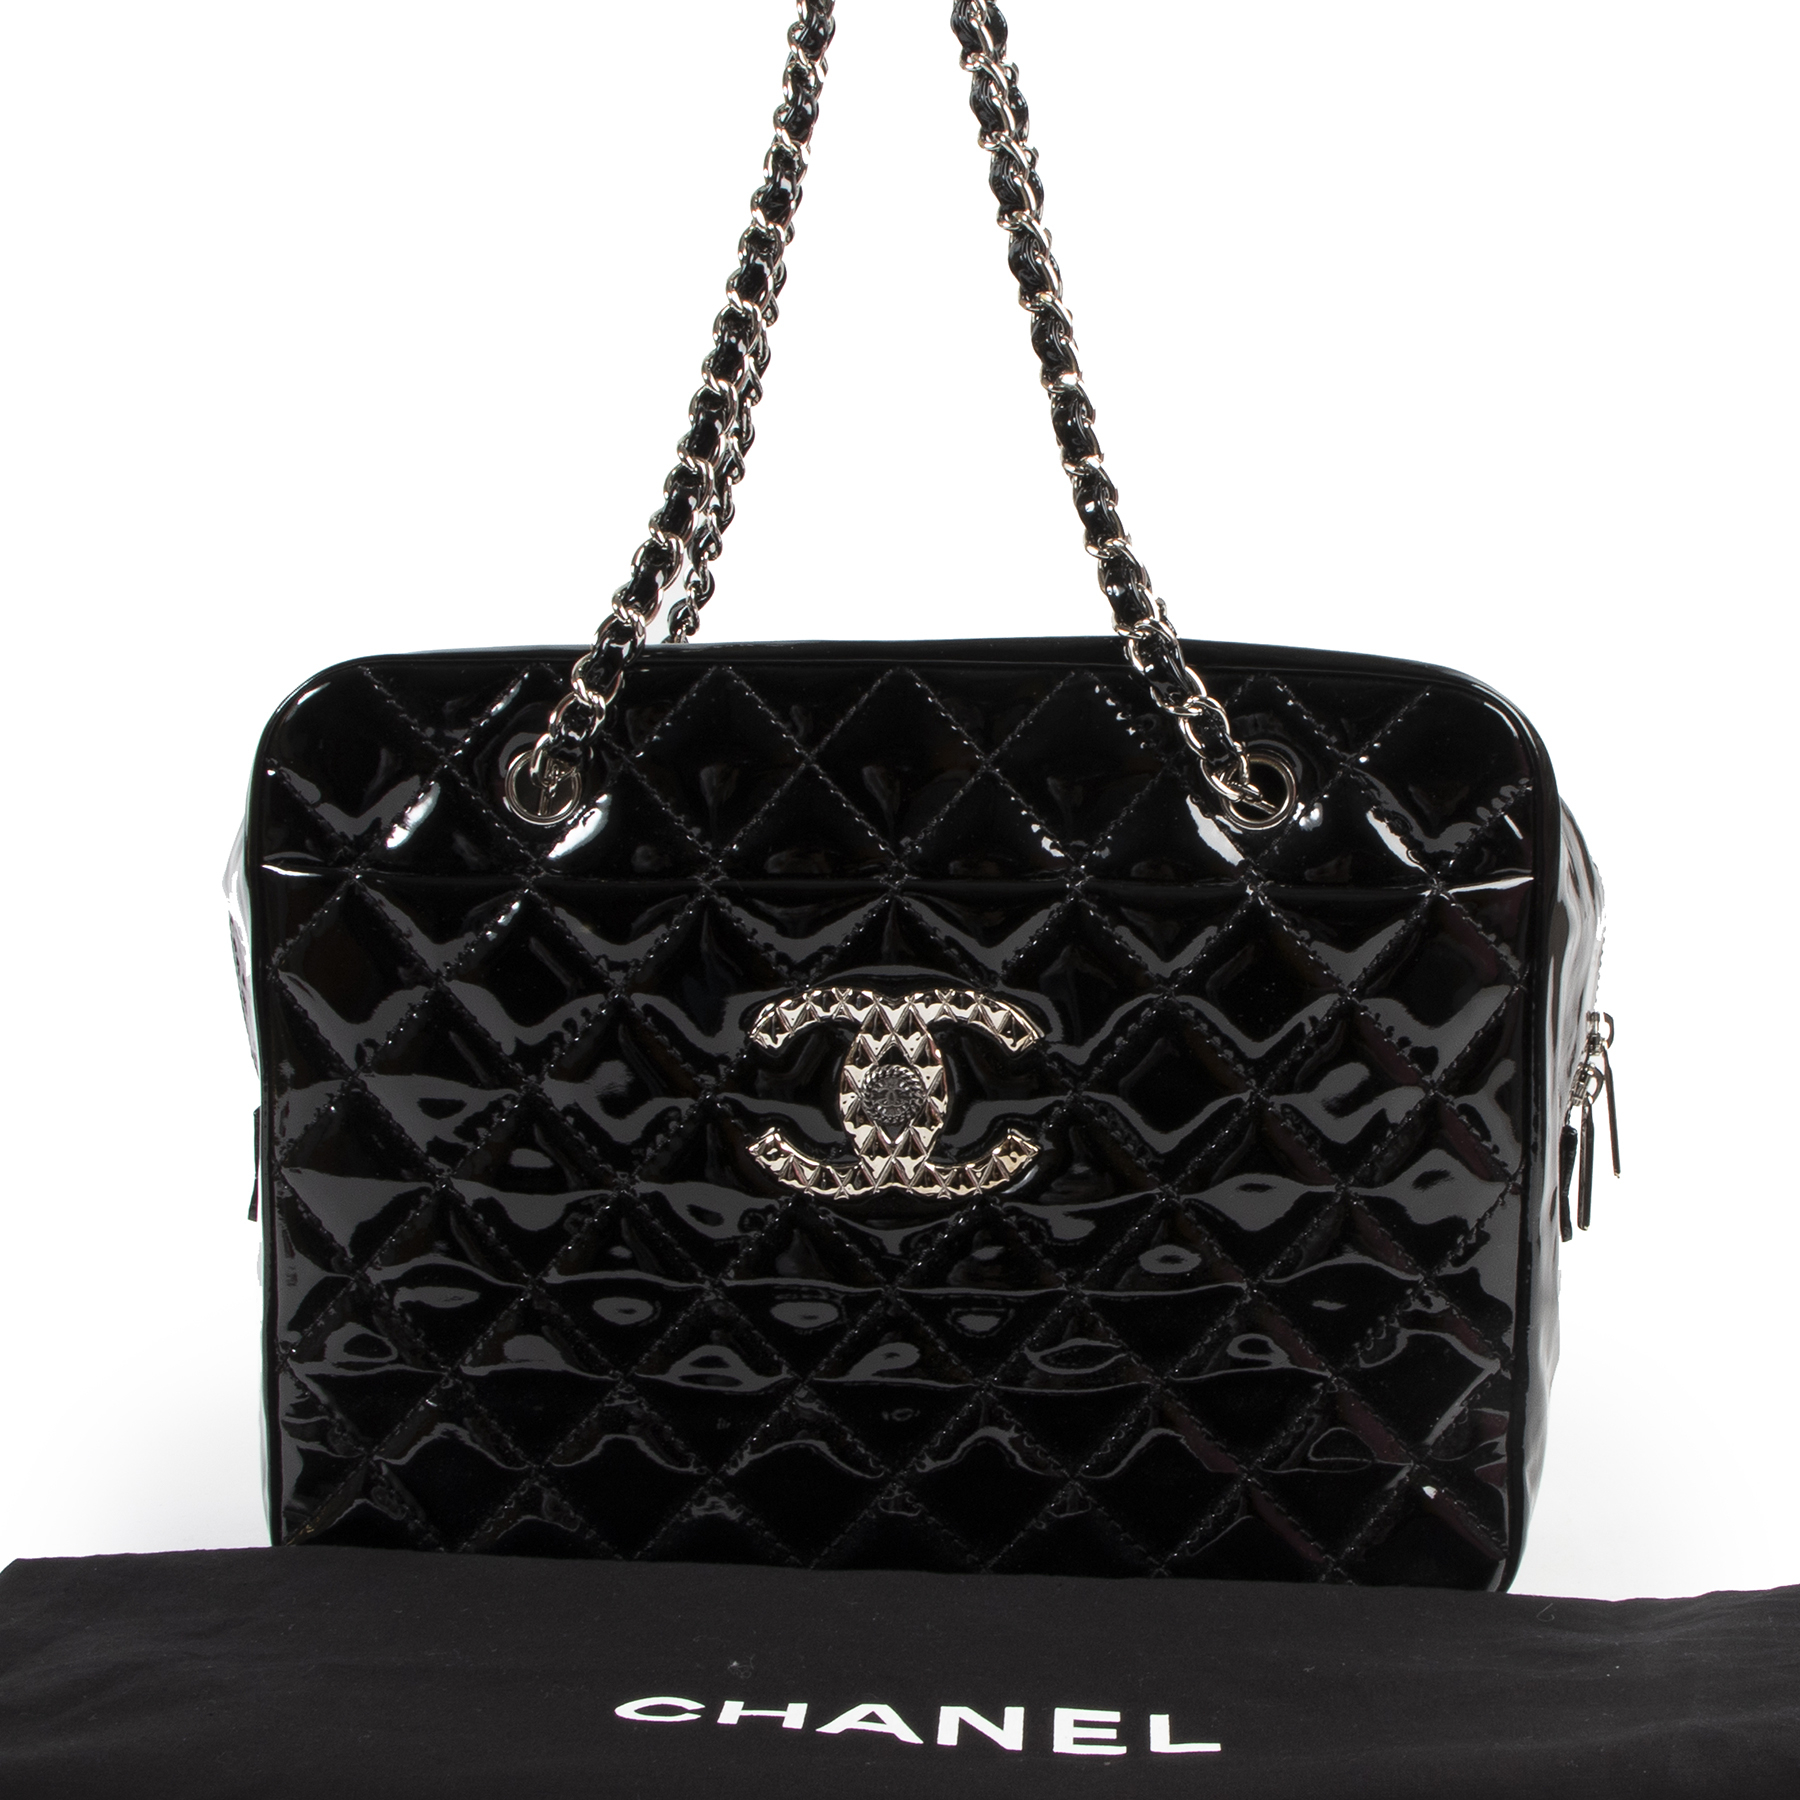 Chanel Black Quilted Patent Leather Shoulder Bag